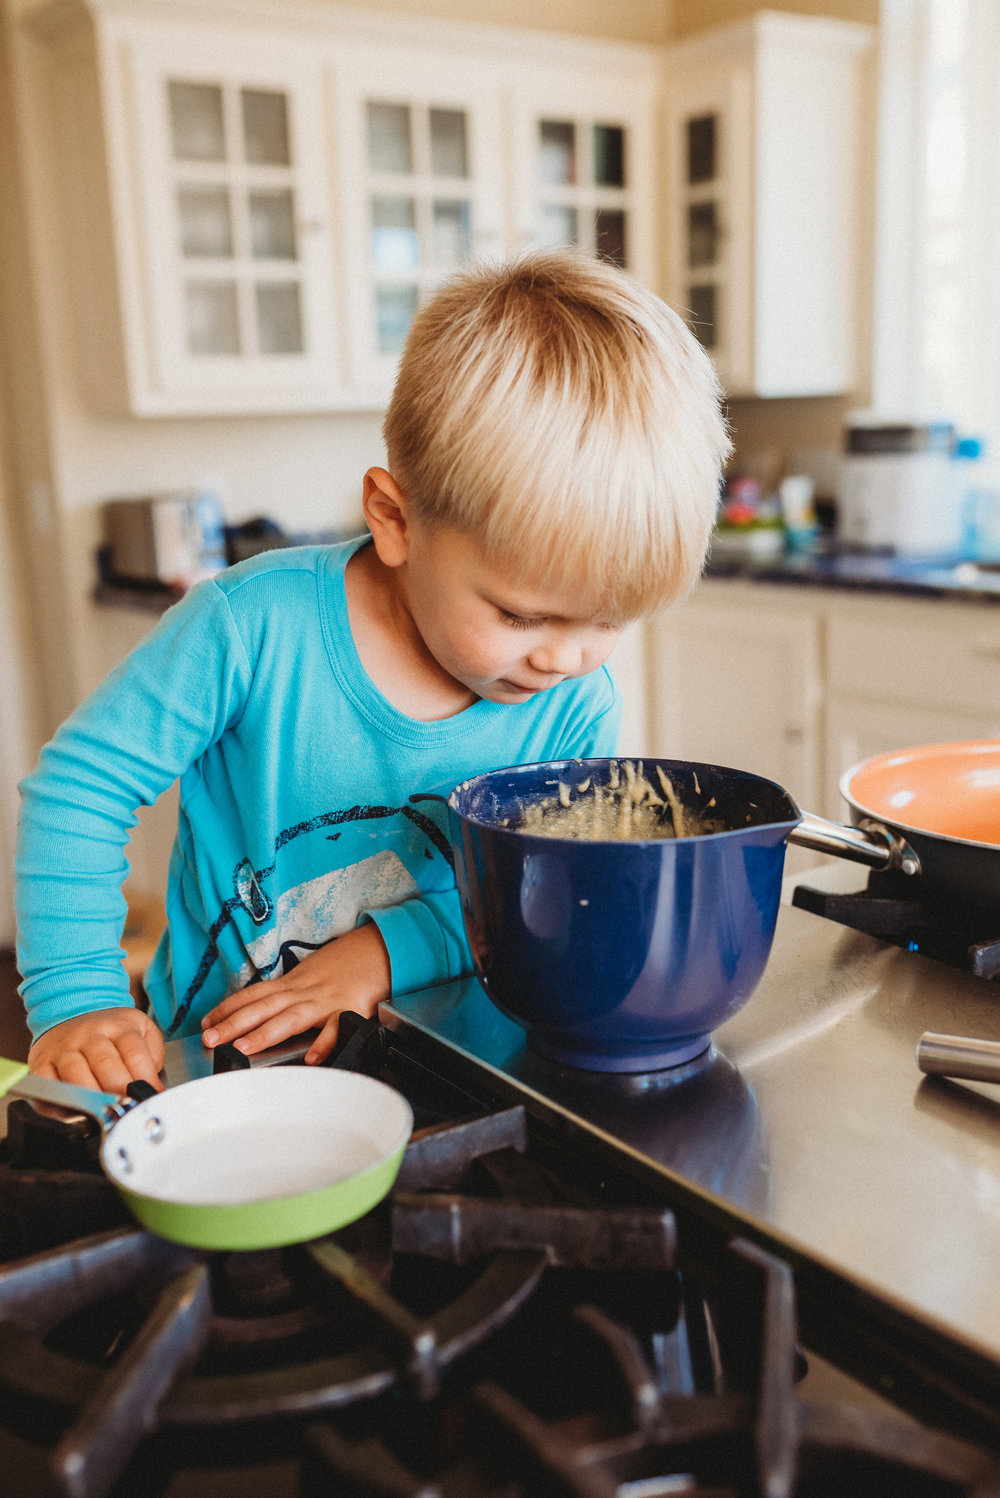 family pancakes morning routine mom of two toddlers pj mornings family time quality time1.jpg